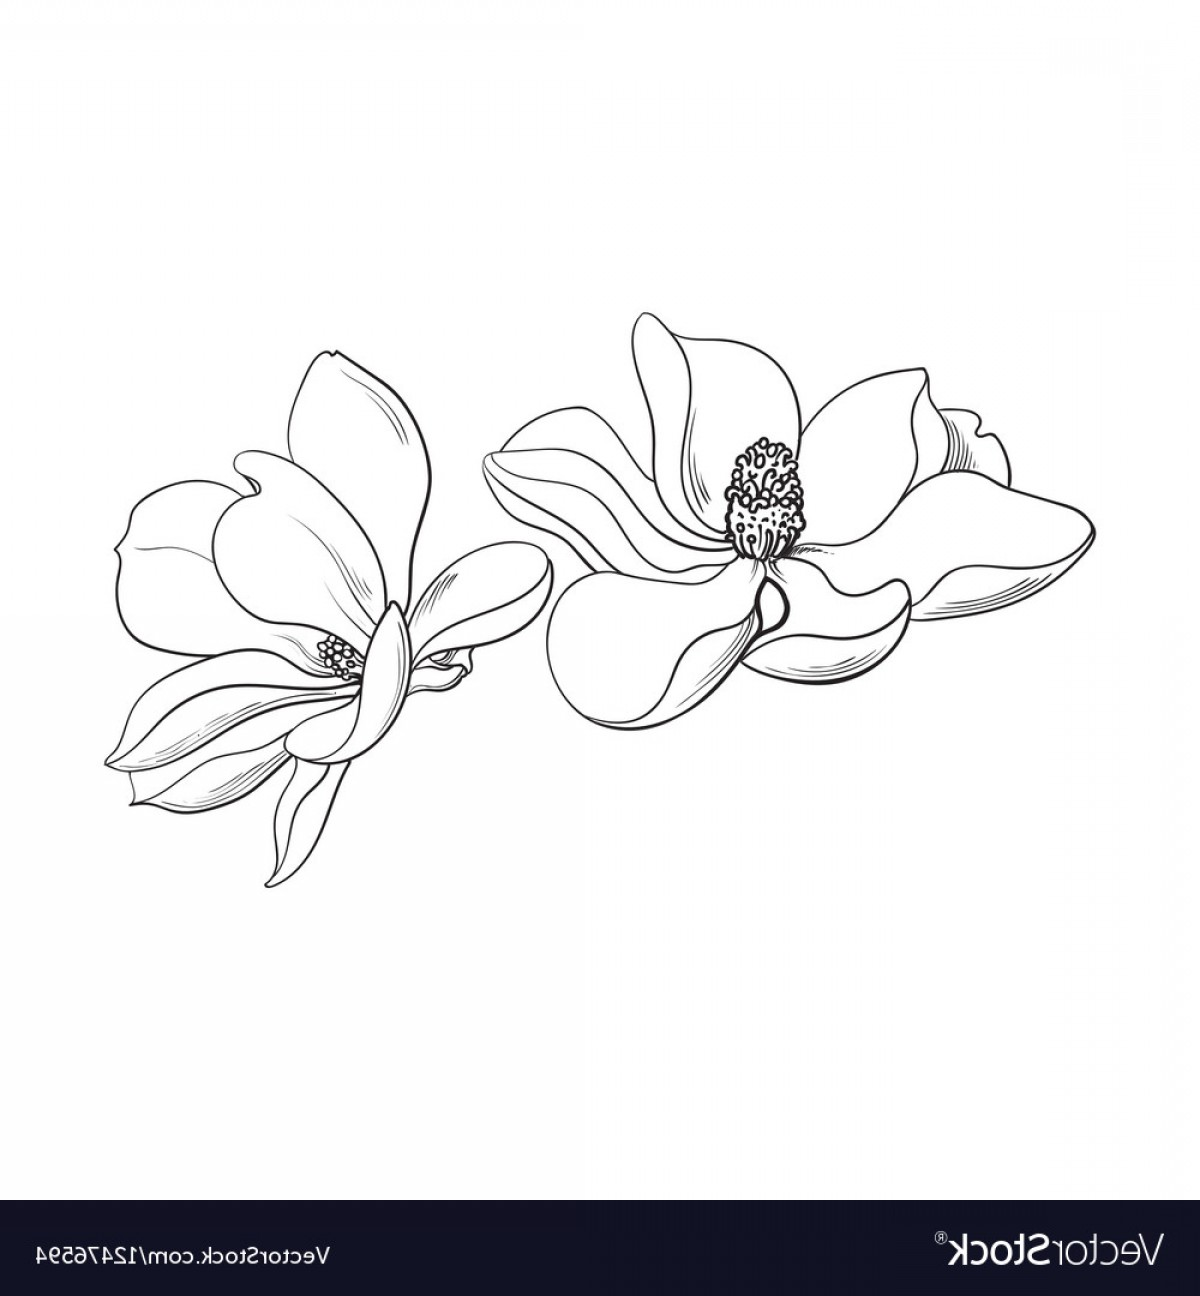 Magnolia Black And White Vector: Two Pink Magnolia Flowers Sketch Vector